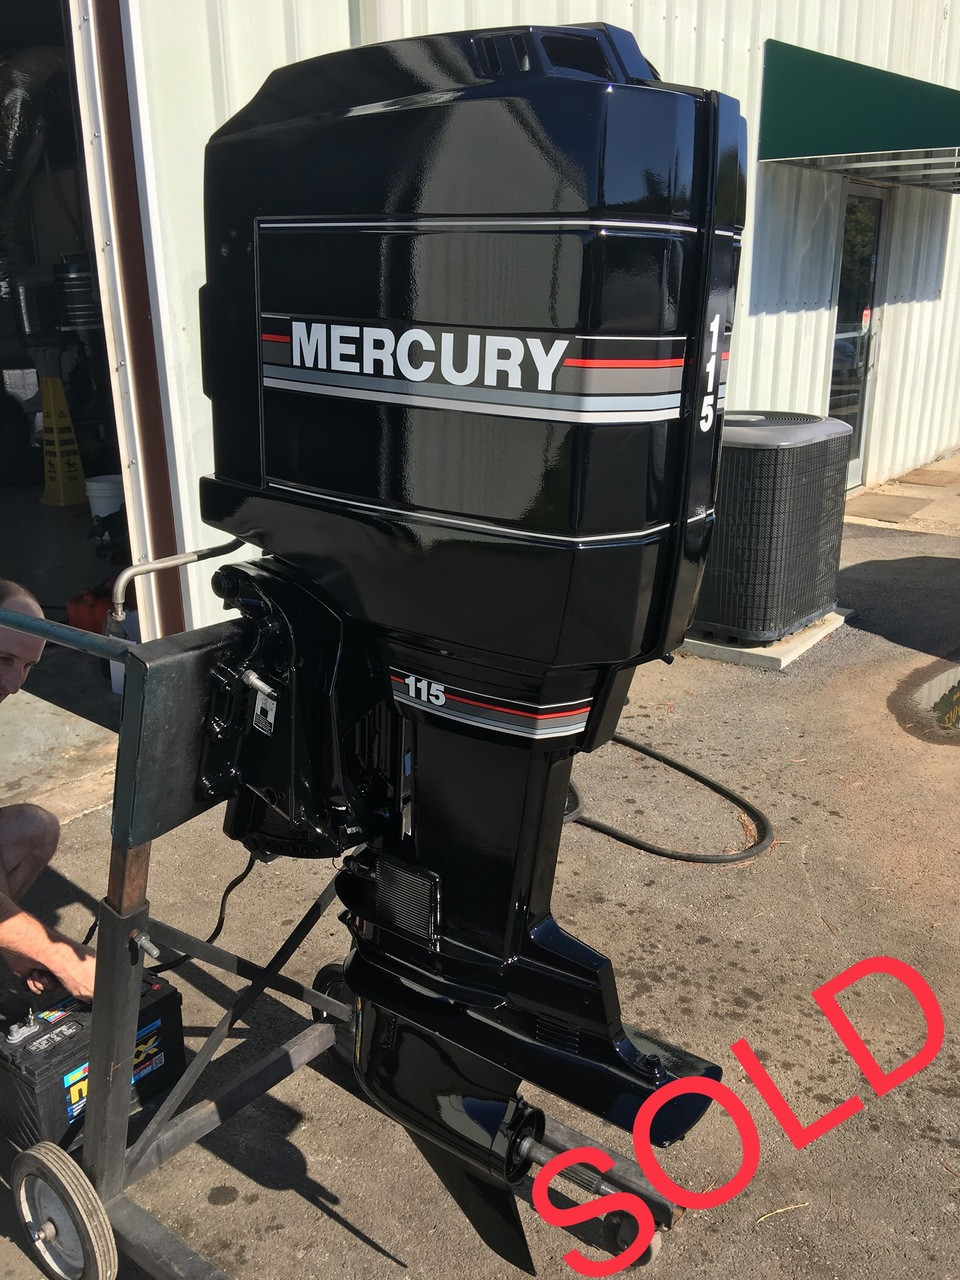 Mercury together with Force Decals Hp moreover Mpv Sqjxmn Xsjg Vkaiq also Th Mercury Hp Decal Set likewise . on 1995 mercury outboard 75 hp decals